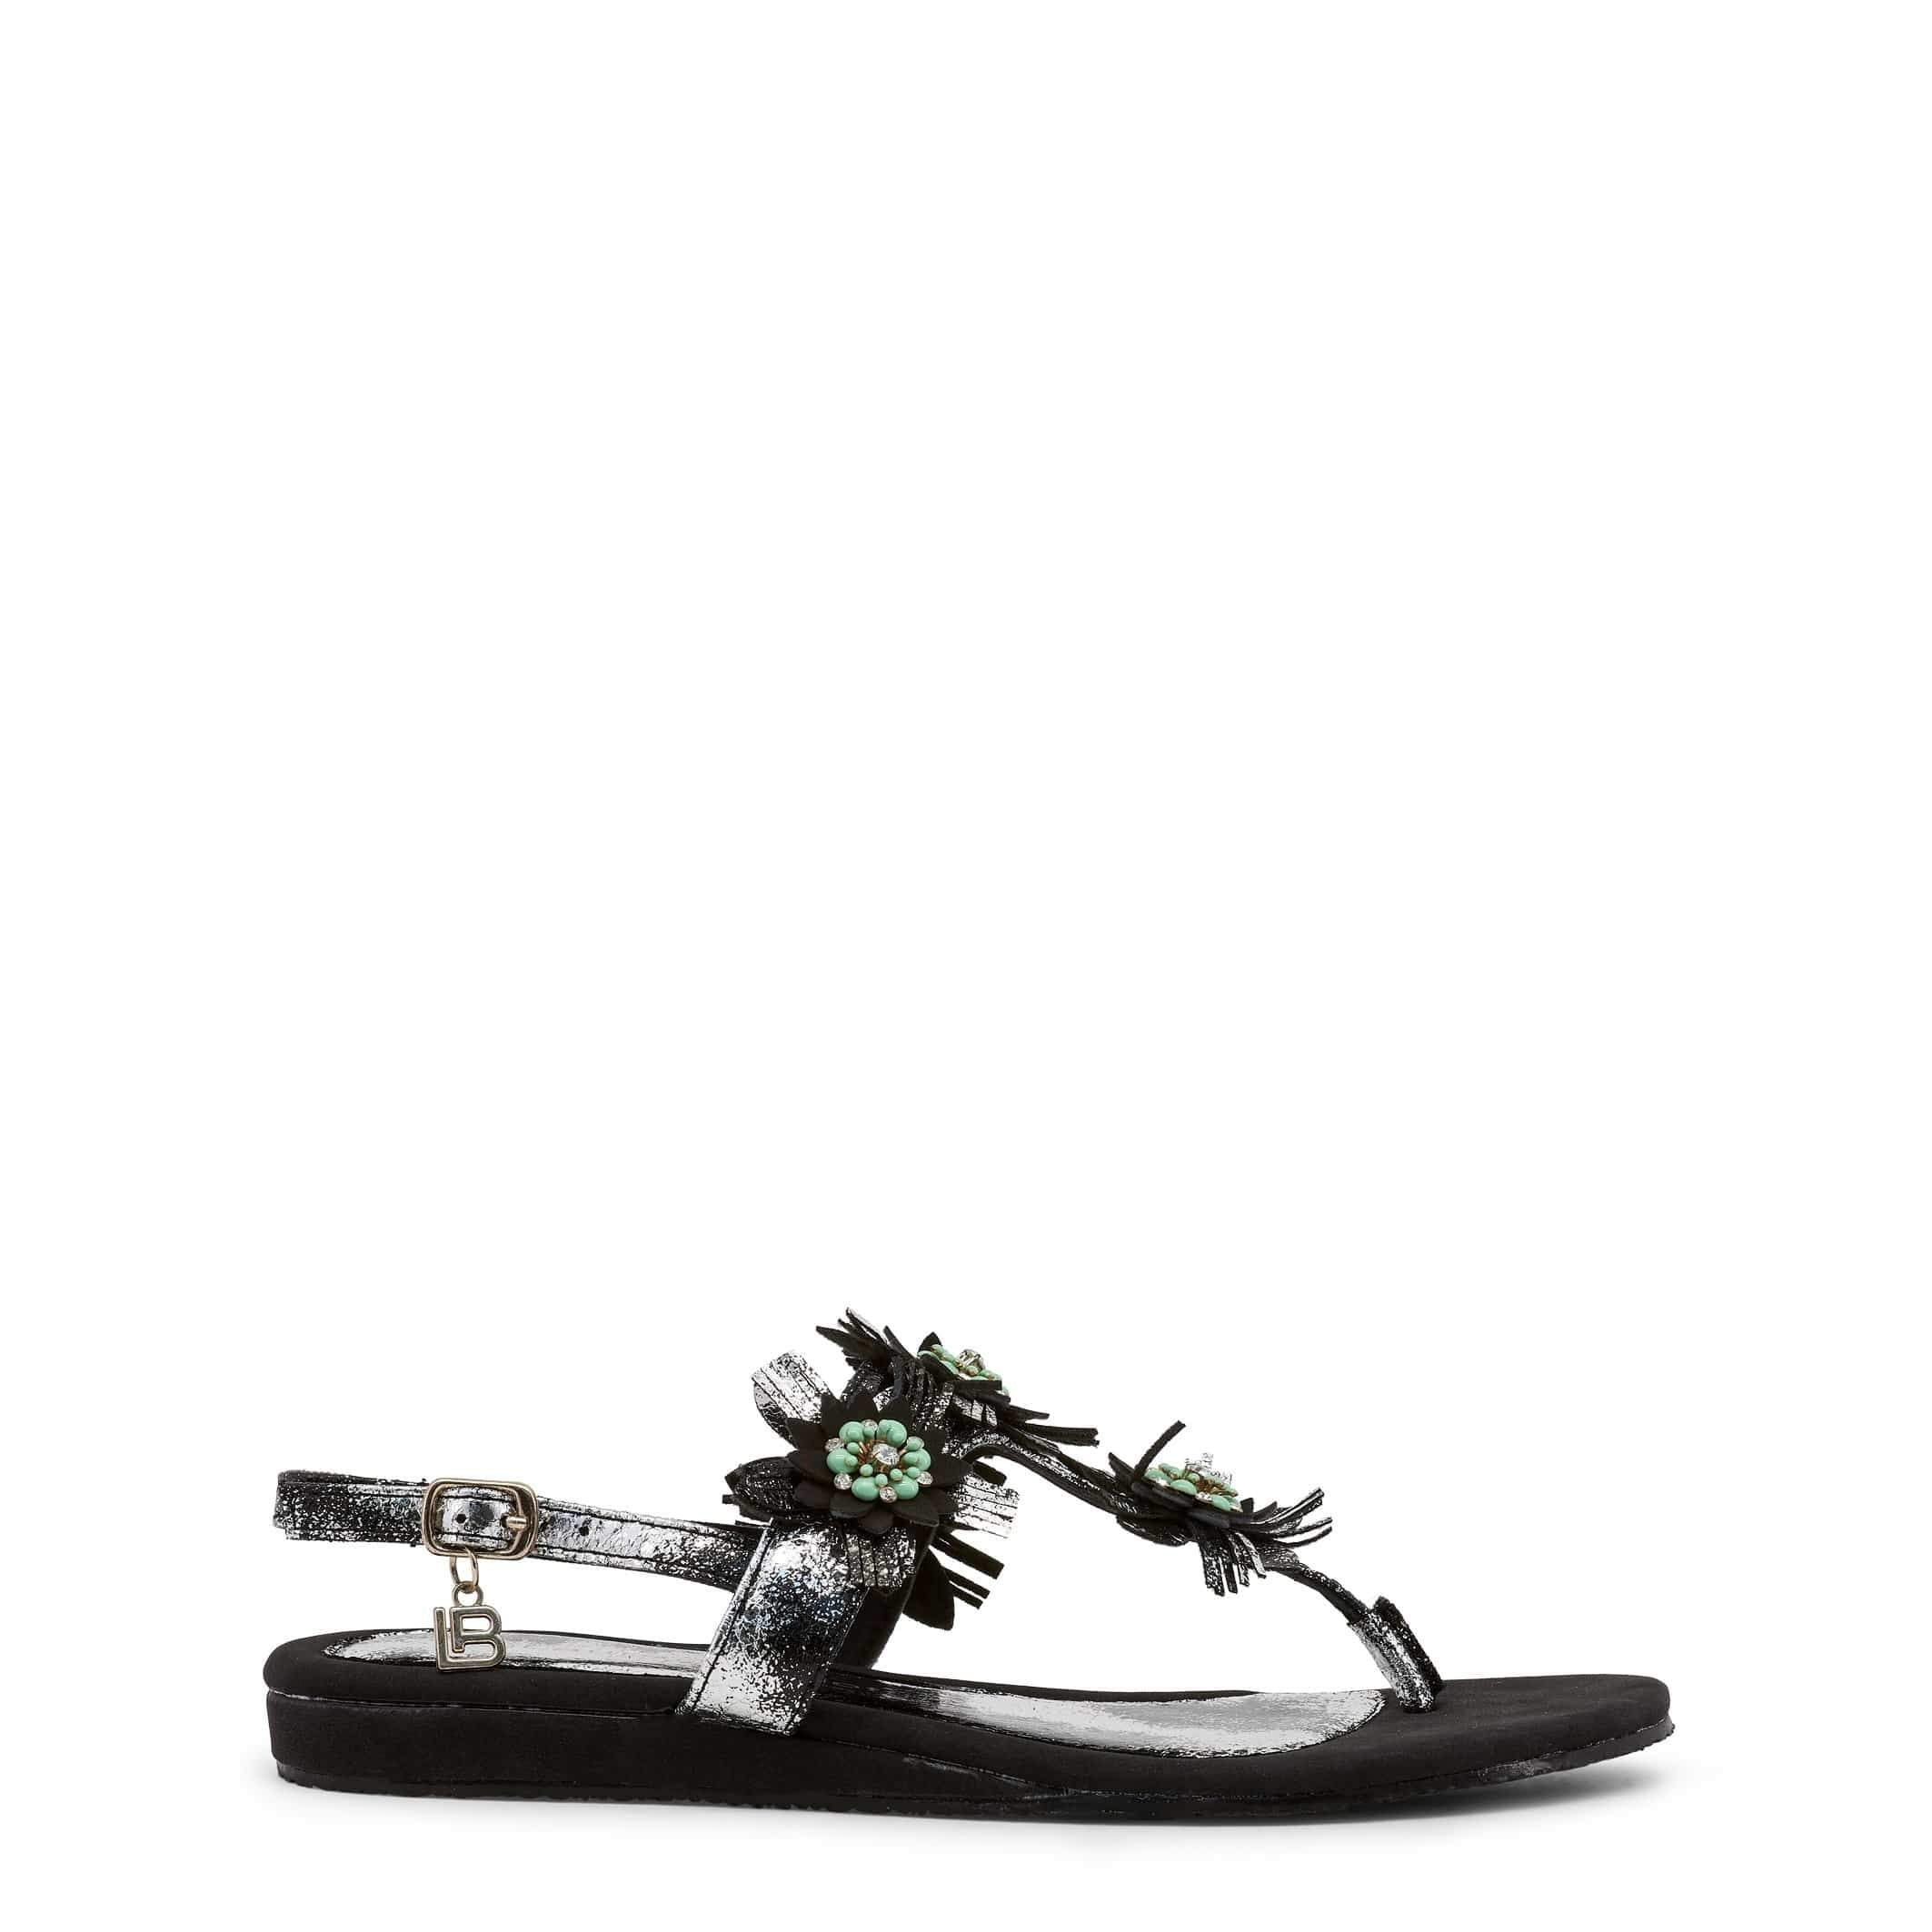 Laura Biagiotti Shoes Sandals black / EU 36 Laura Biagiotti - 717_SPECIALNABUK